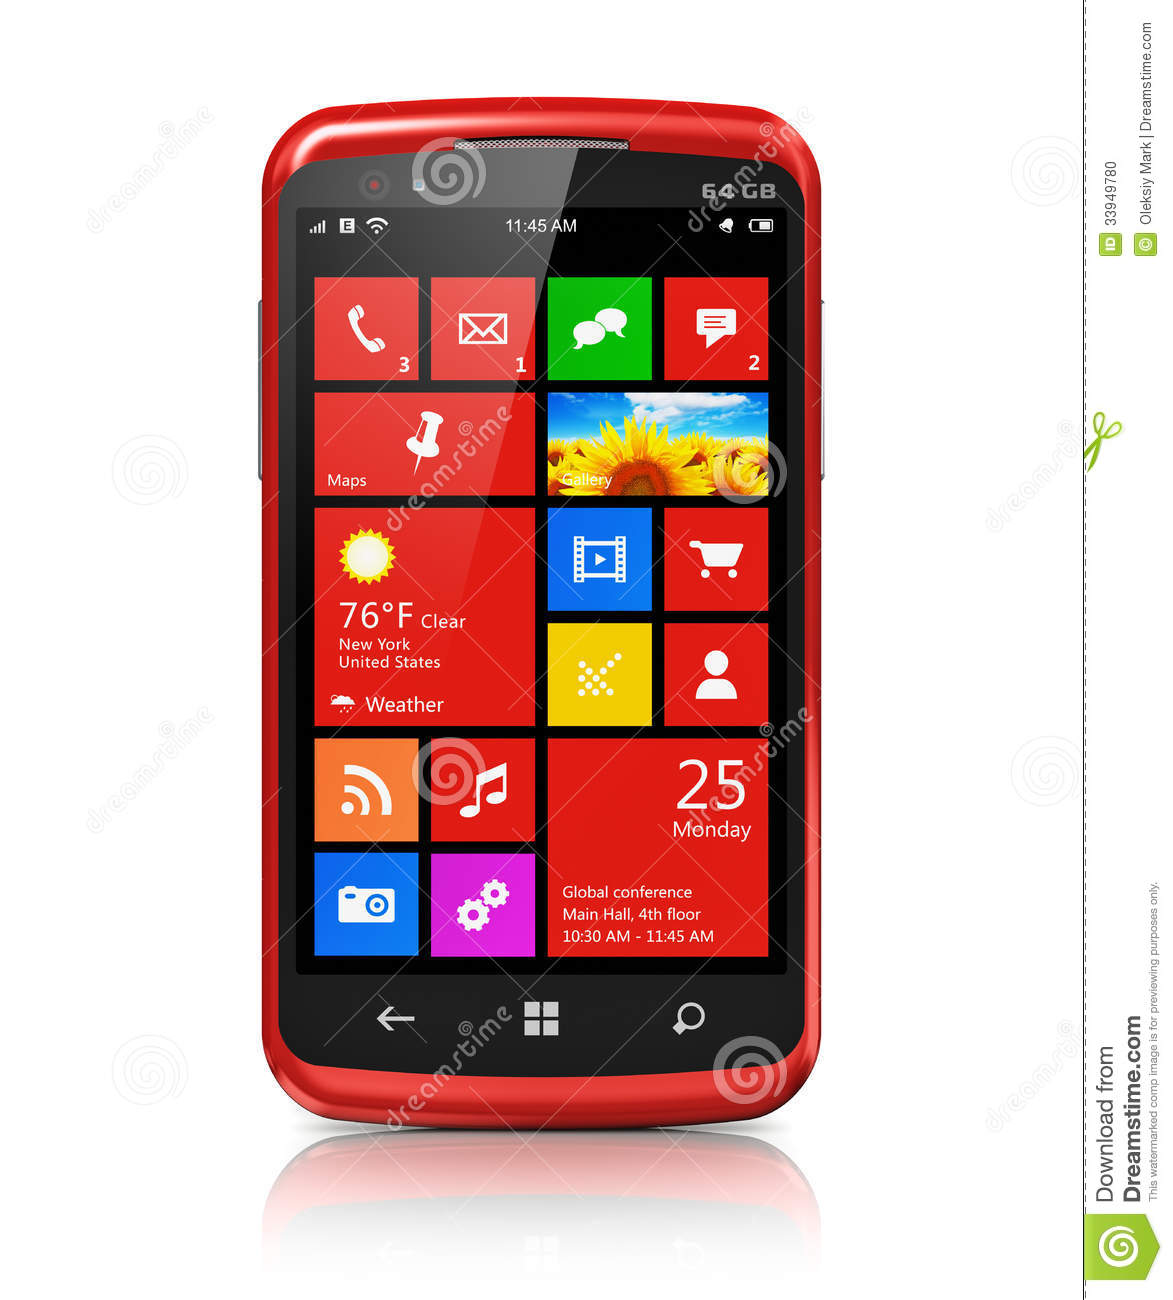 modern smartphone with touchscreen interface stock photo